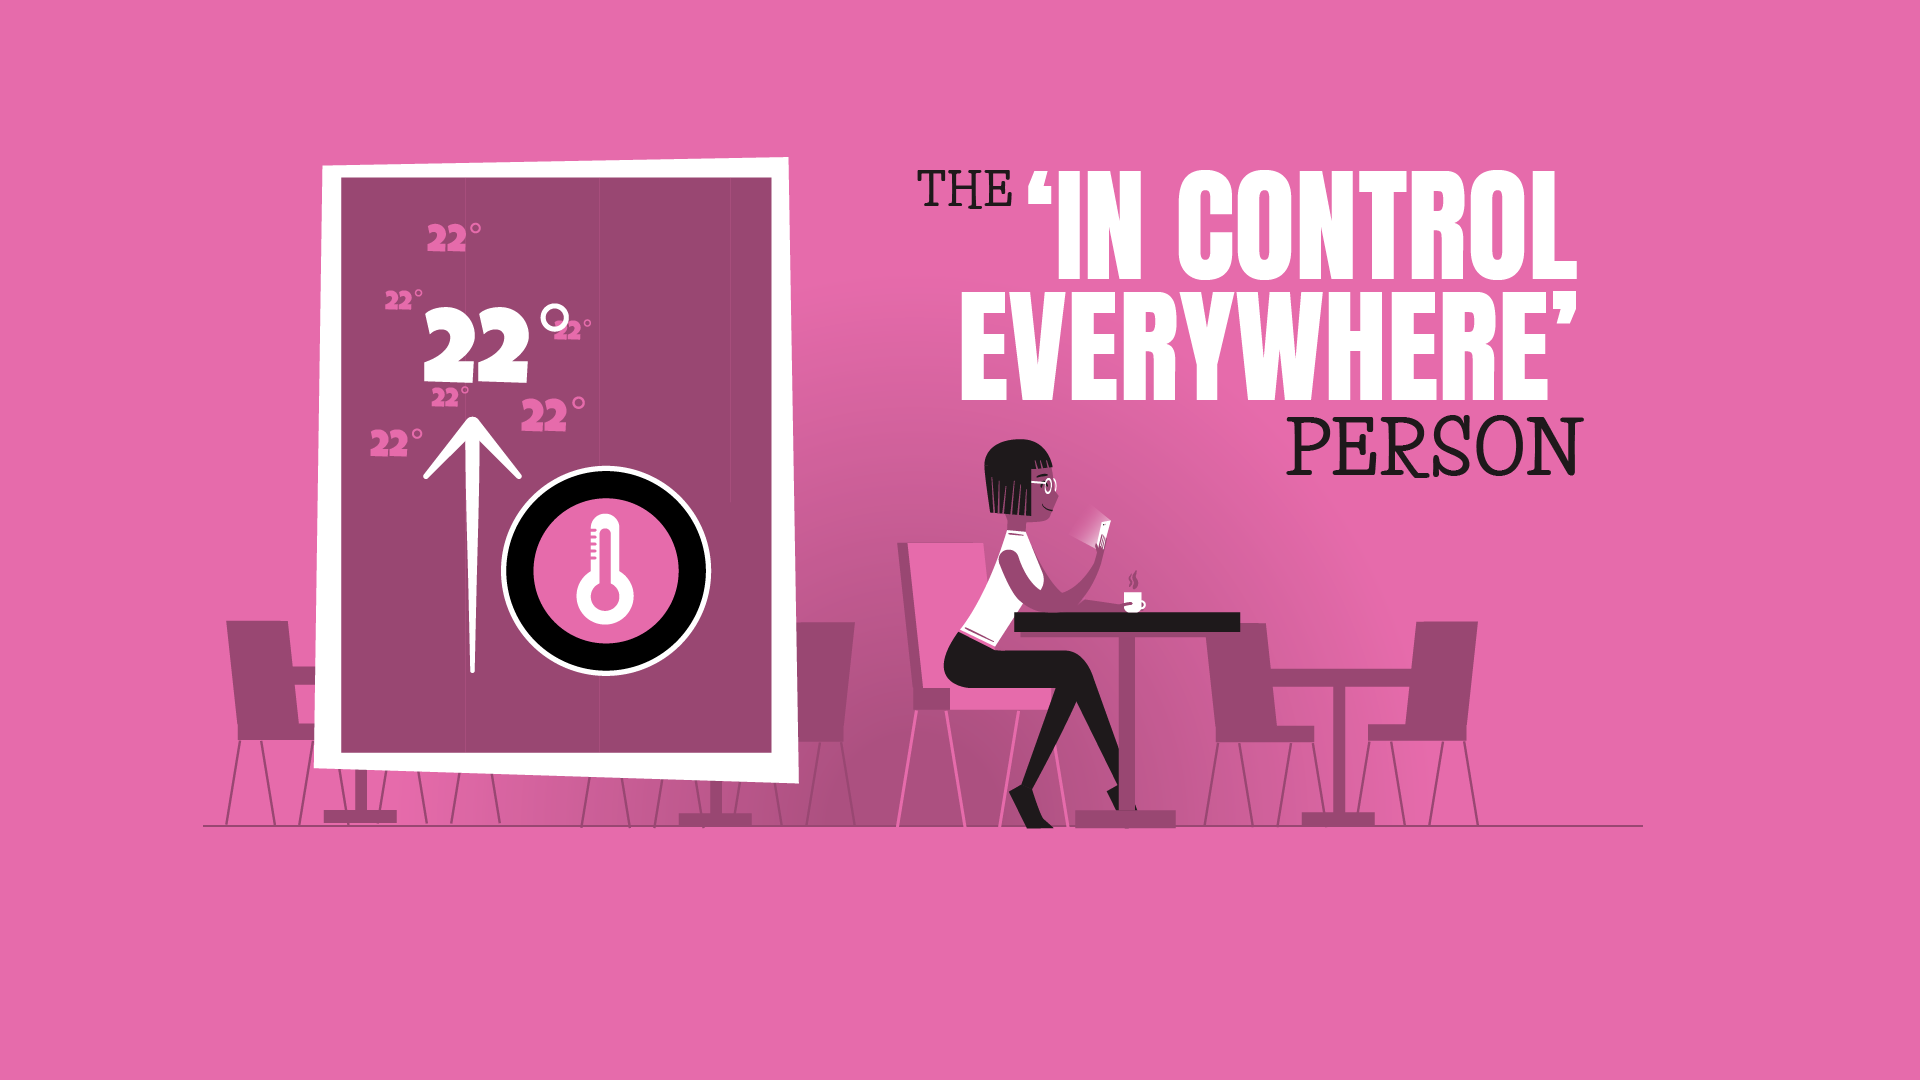 in control everywhere person